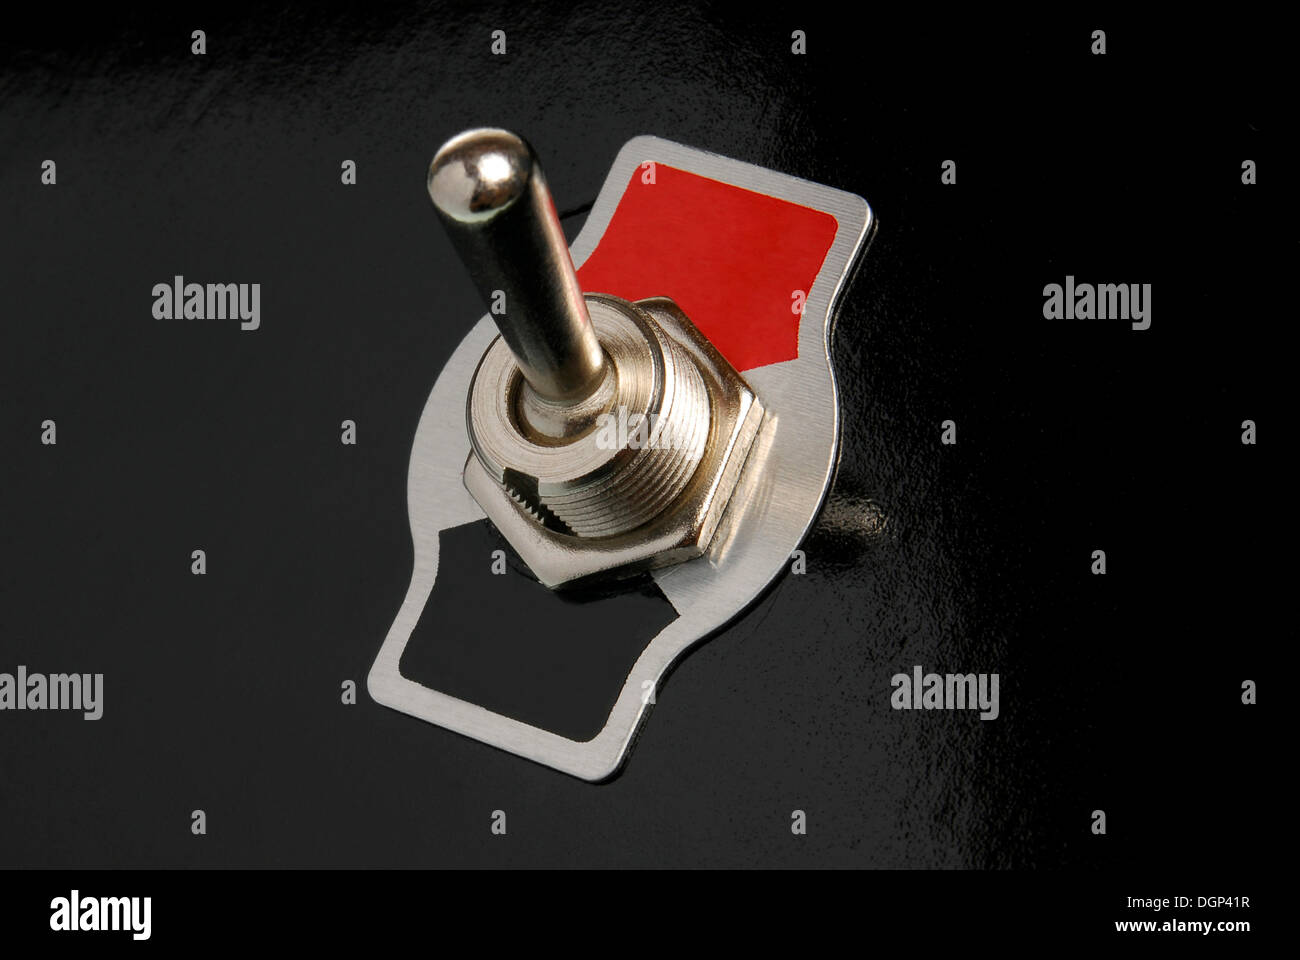 Toggle switch, without a label, symbolic image - Stock Image